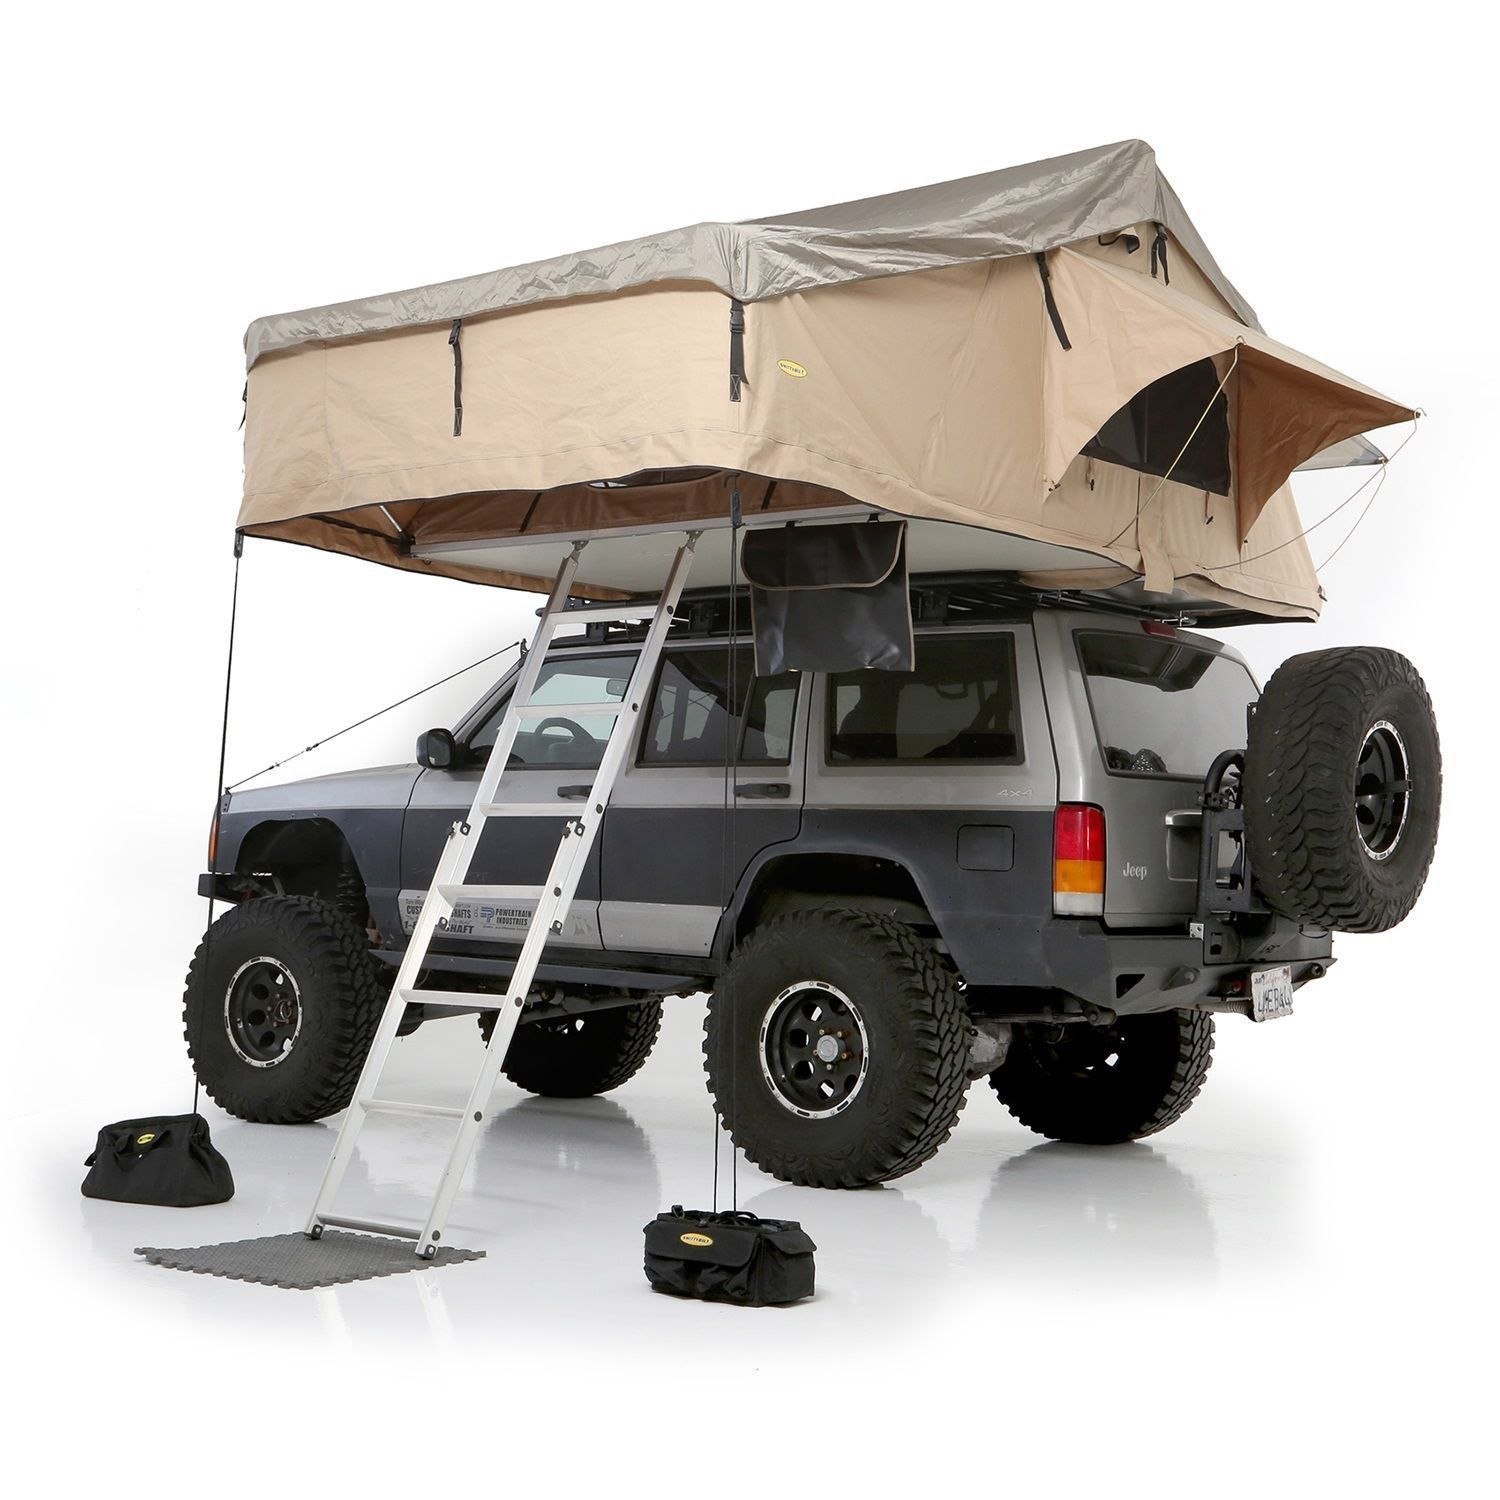 Smittybilt Overlander Xl Roof Top Tent Trucks Pinterest Cigarette Lighter Wiring Plug Jeep Cherokee Forum Is Stepping Up To The Plate With Their First Offering Into